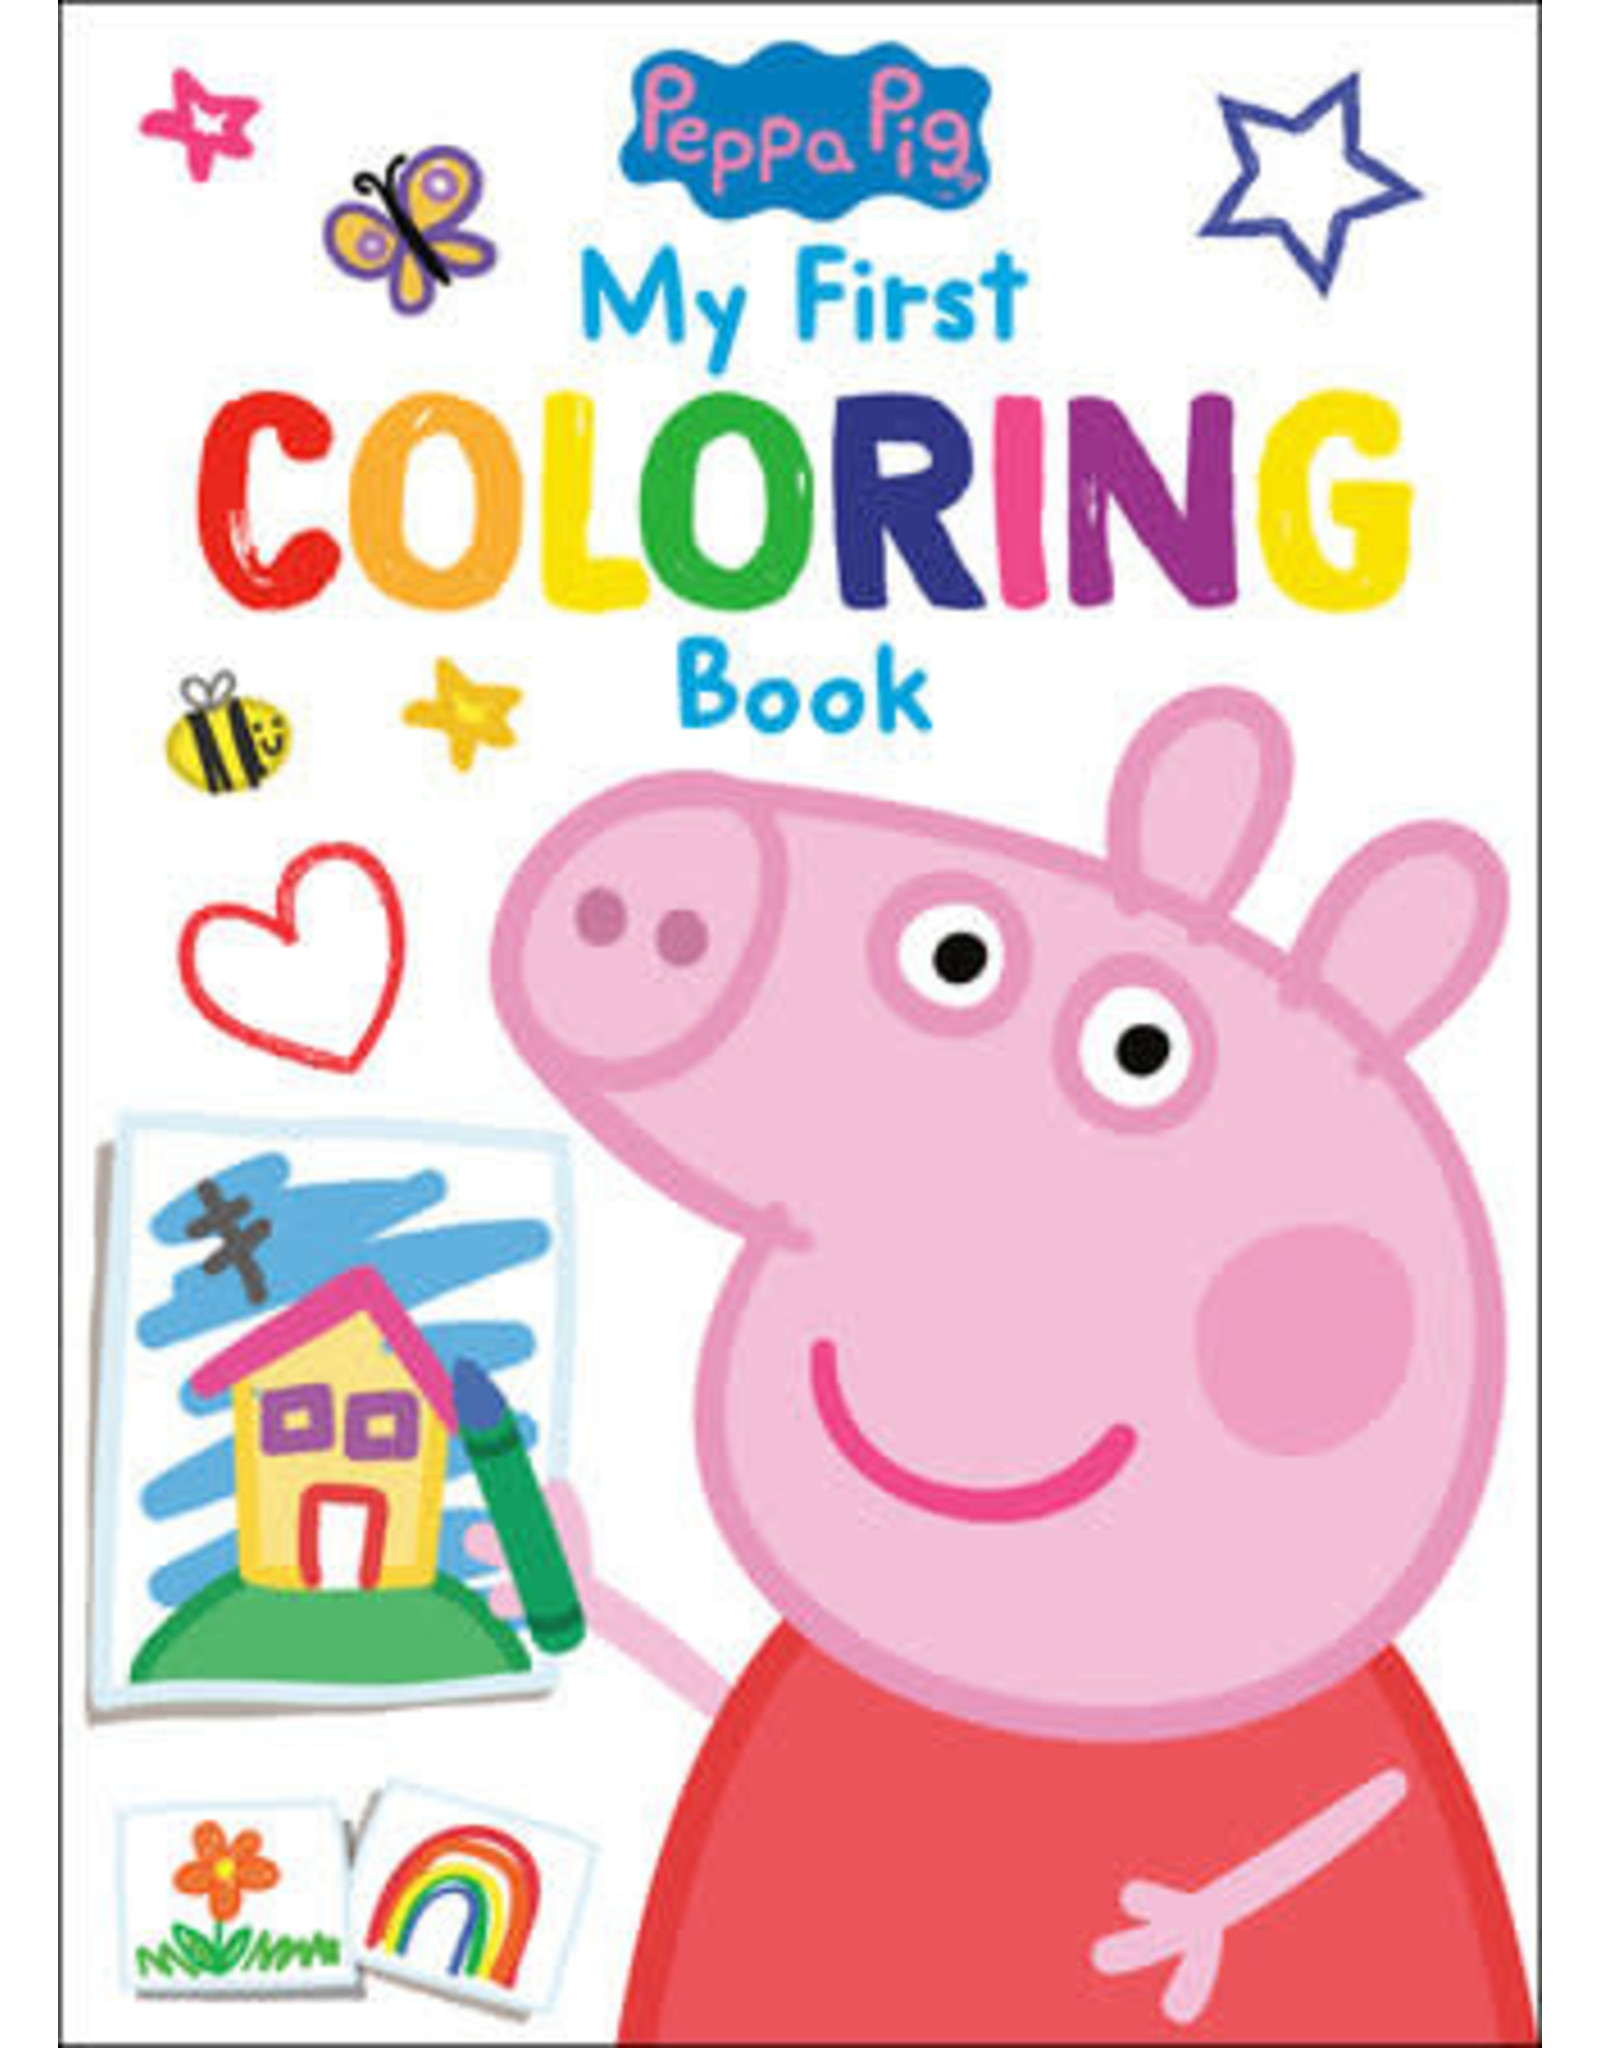 Golden Peppa Pig My First Coloring Book